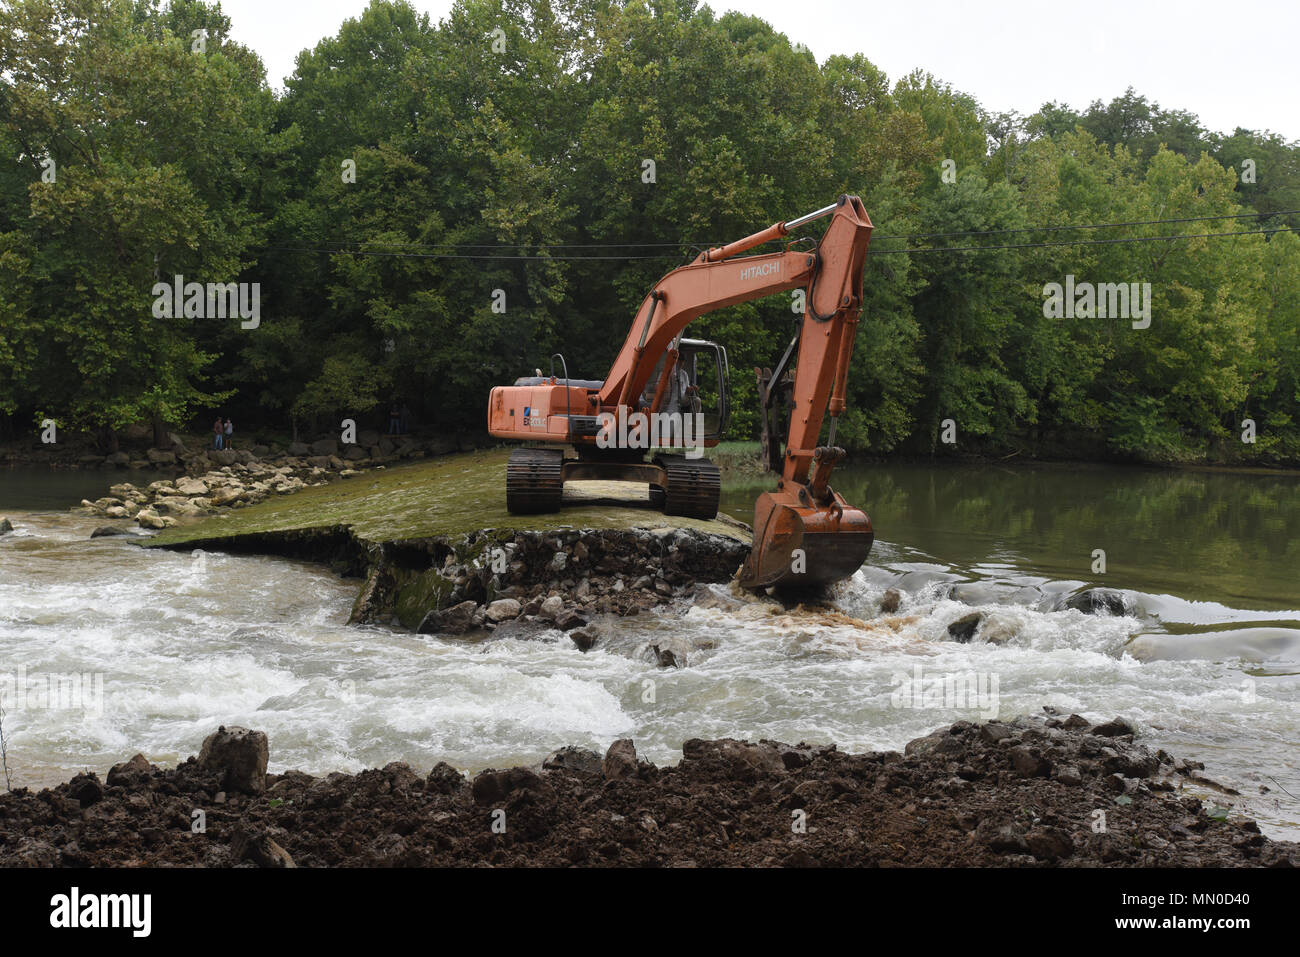 An excavator removes the concrete cap from Roaring River Dam in Jackson County, Tennessee Aug. 1, 2017. The Tennessee Wildlife Resources Agency is removing the dam, built in 1976 by the U.S. Army Corps of Engineers Nashville District.  The dam in Jackson County, Tennessee was at risk of failure and the Corps of Engineers determined that it would be better to remove the dam as it was no longer needed as a fish barrier on the Cumberland River tributary.  Partners in the joint effort to remove the dam include TWRA, Corps of Engineers, The Nature Conservancy, U.S. Fish and Wildlife Service, Tennes - Stock Image